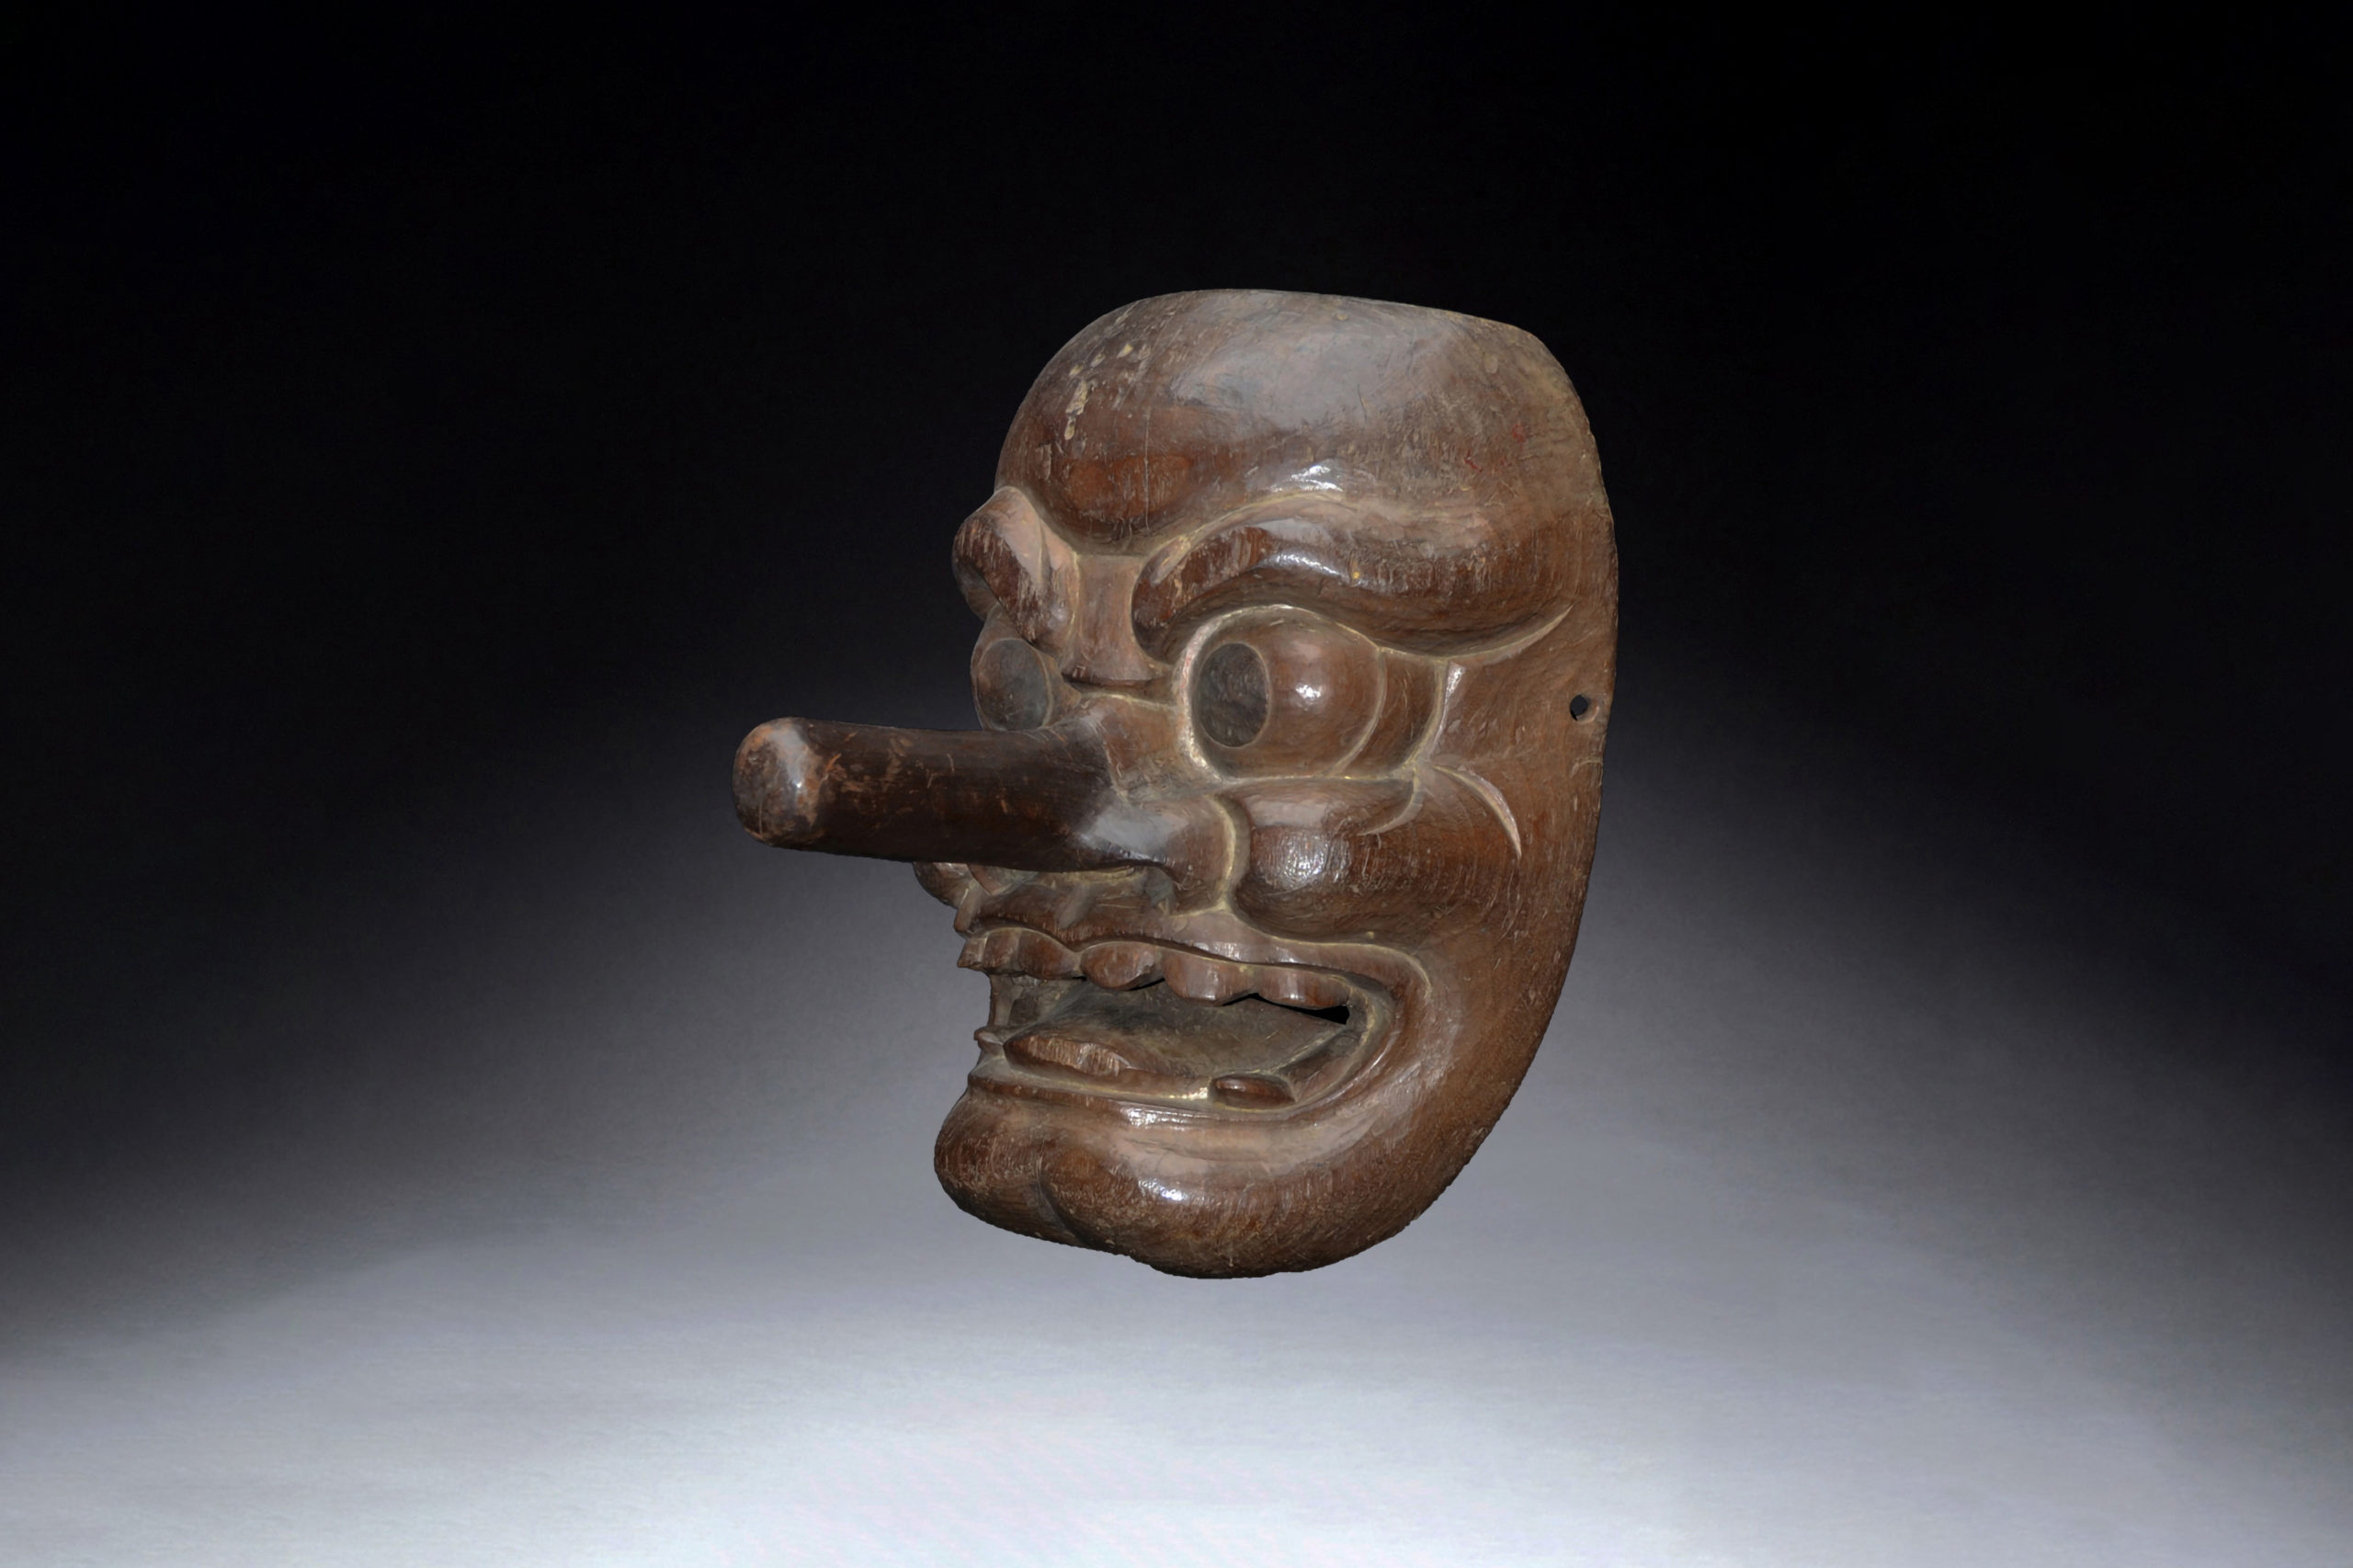 A Superb Japanese Tengu Mask from the19th Century